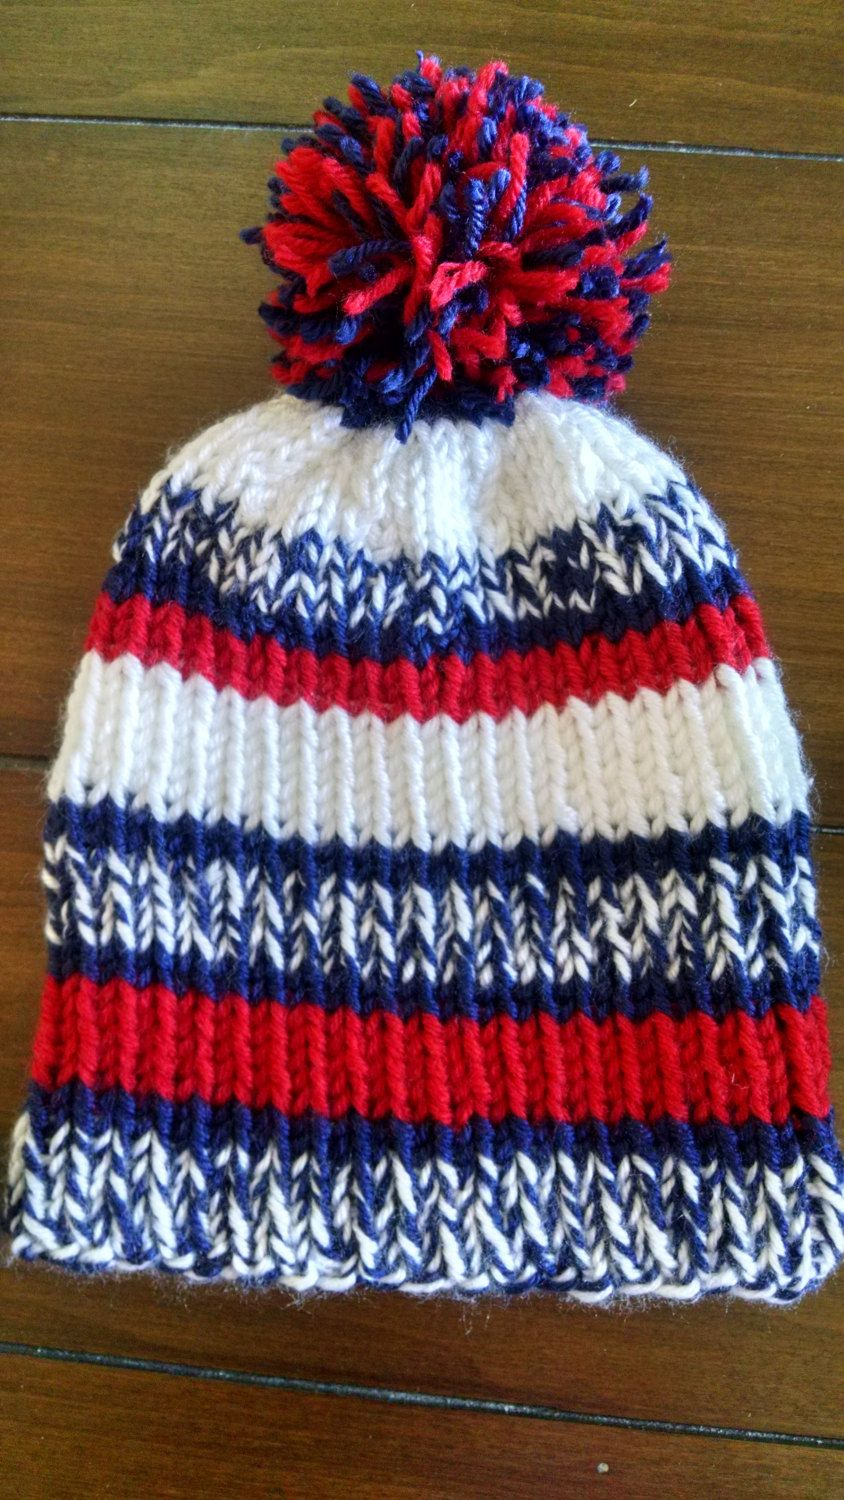 33924de54dd Knitting pattern for hats inspired by the NFL sidelines hat All NFL teams  by Belledria on Etsy